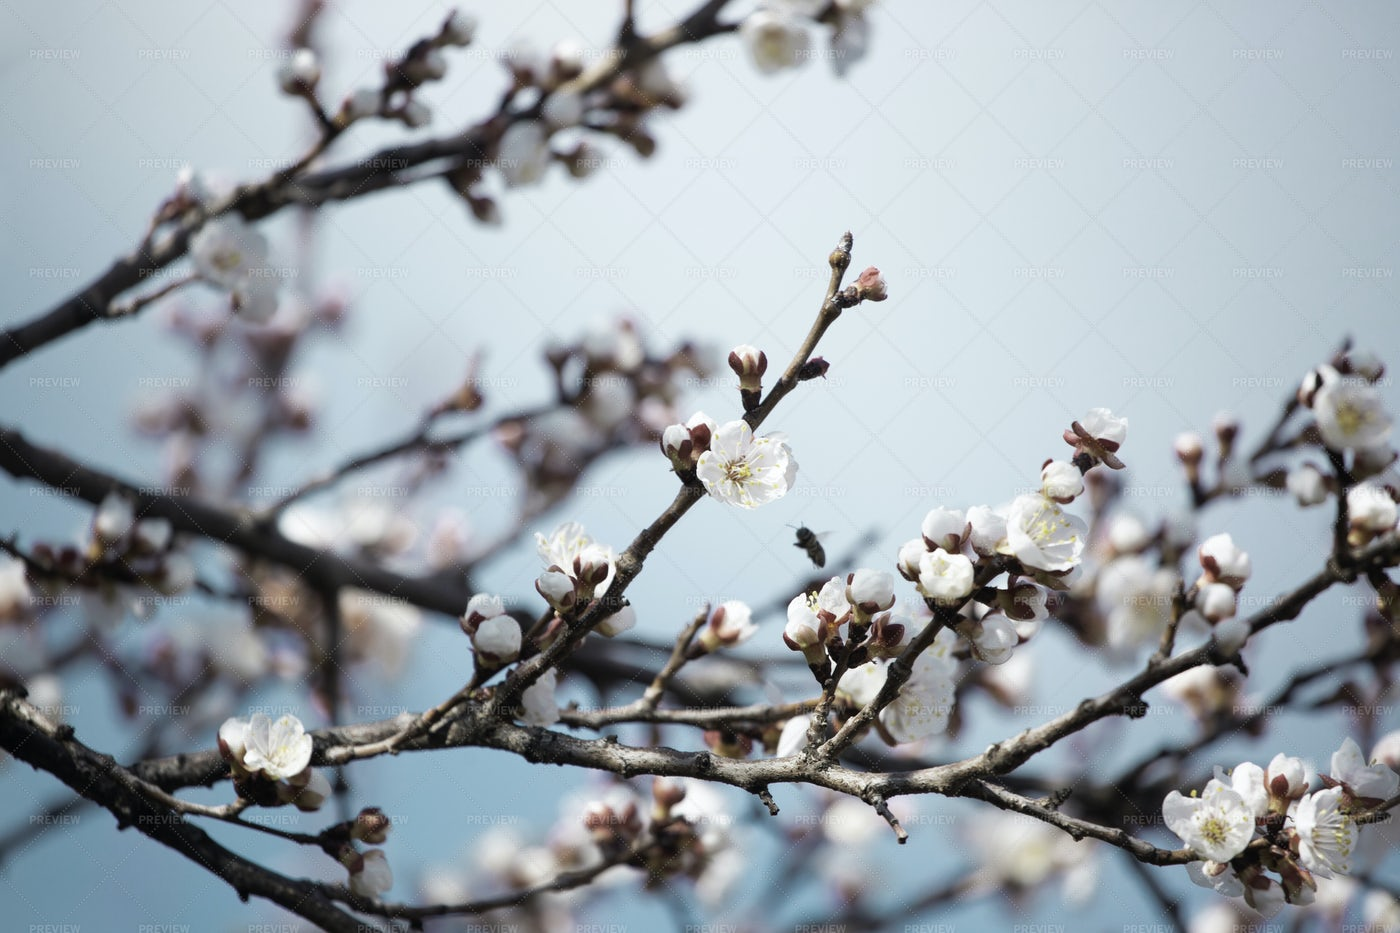 Apricot Tree Flowers With Soft Focus: Stock Photos